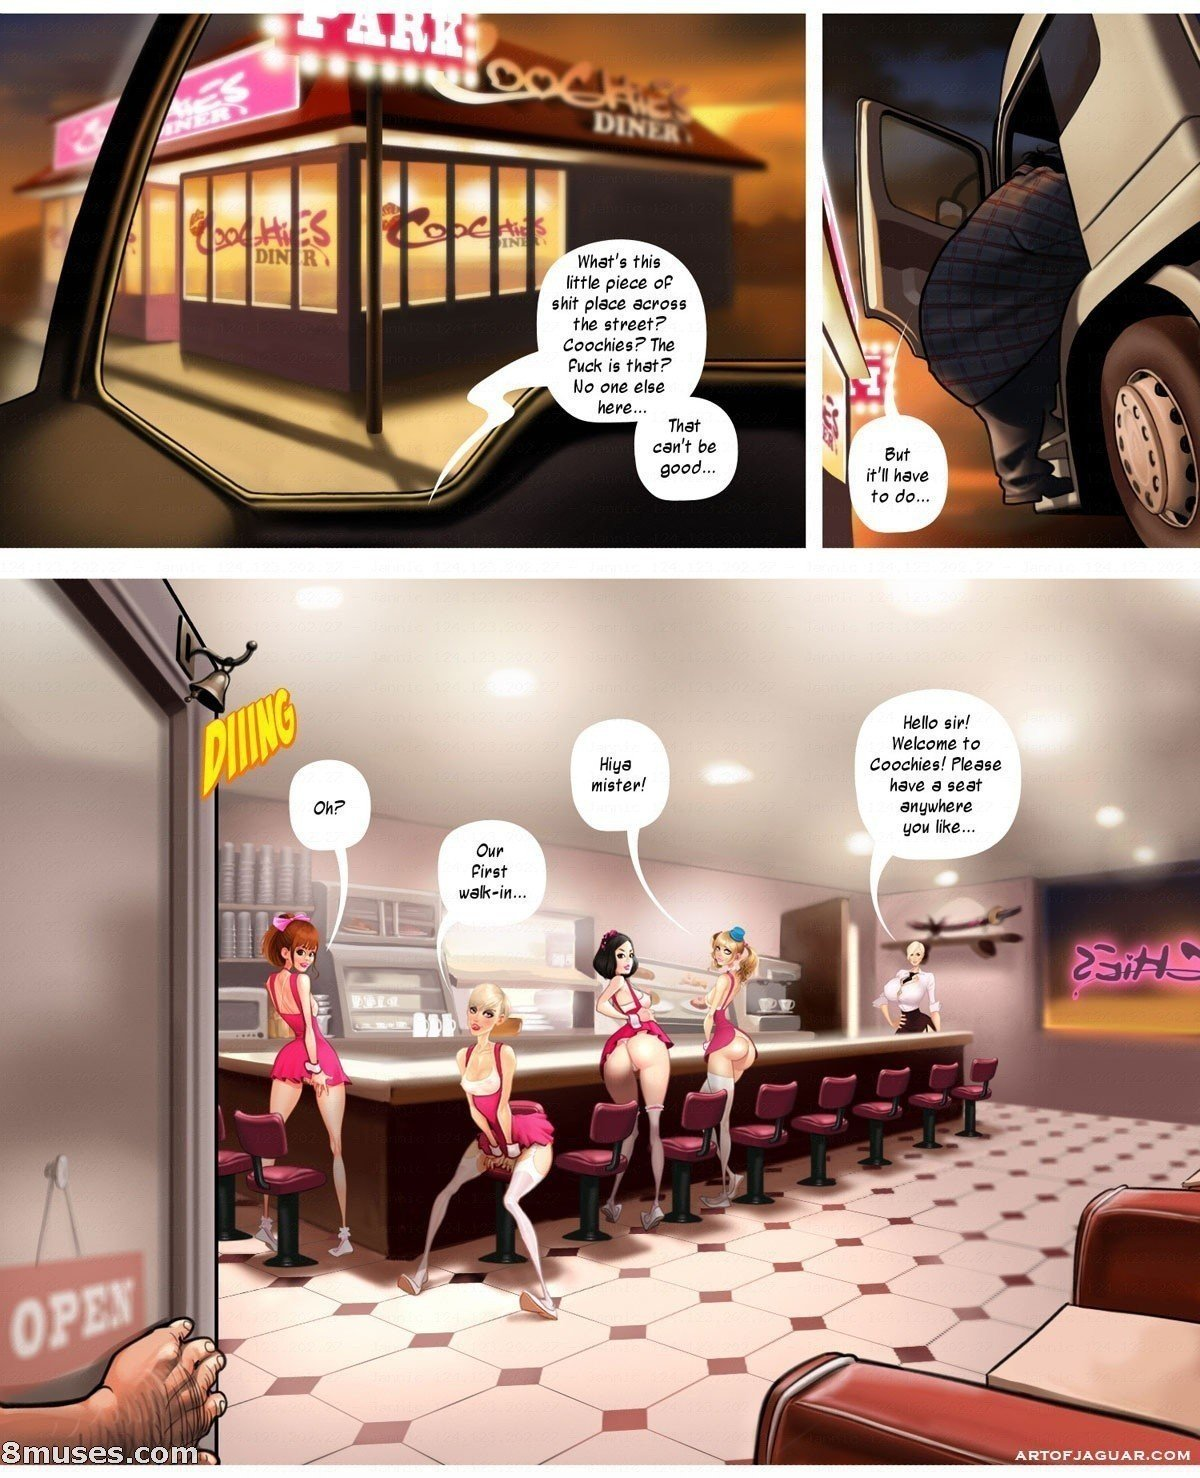 Coochies Diner 04